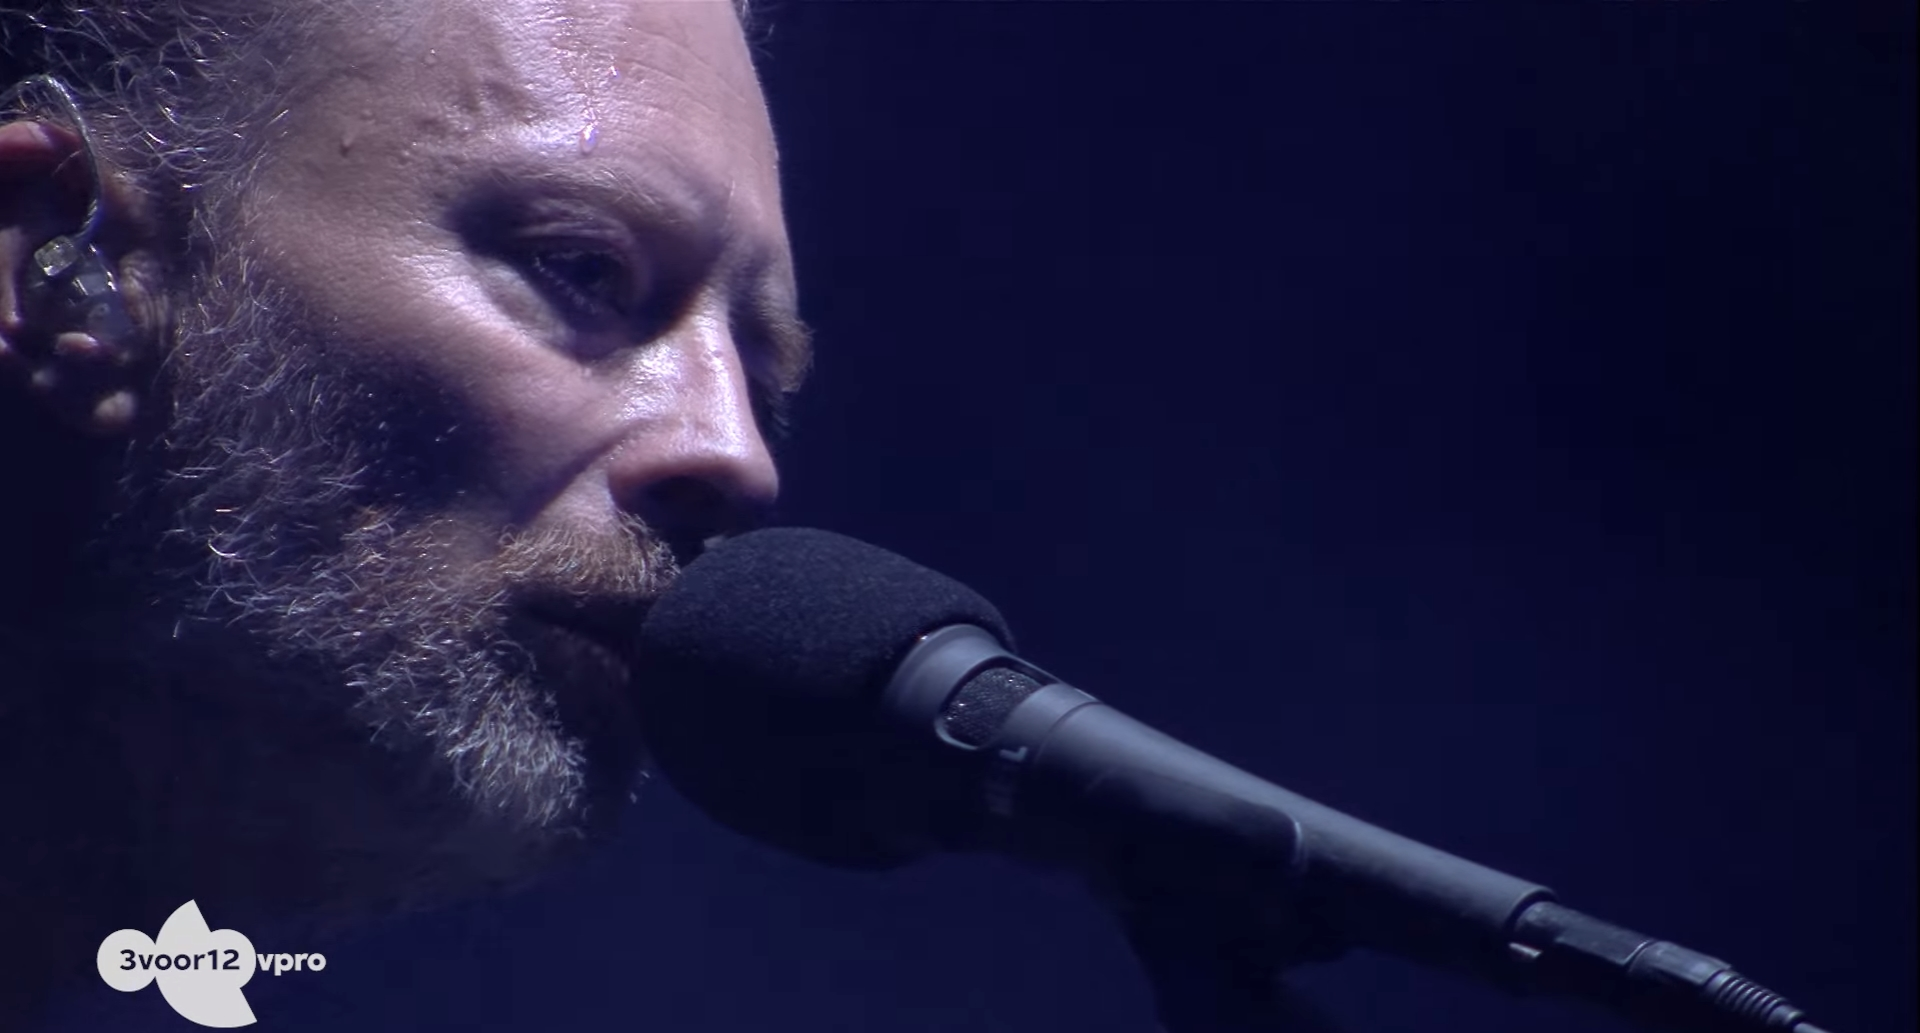 Pro Shot Full Show Video Radiohead Performs At Best Kept Secret 2017